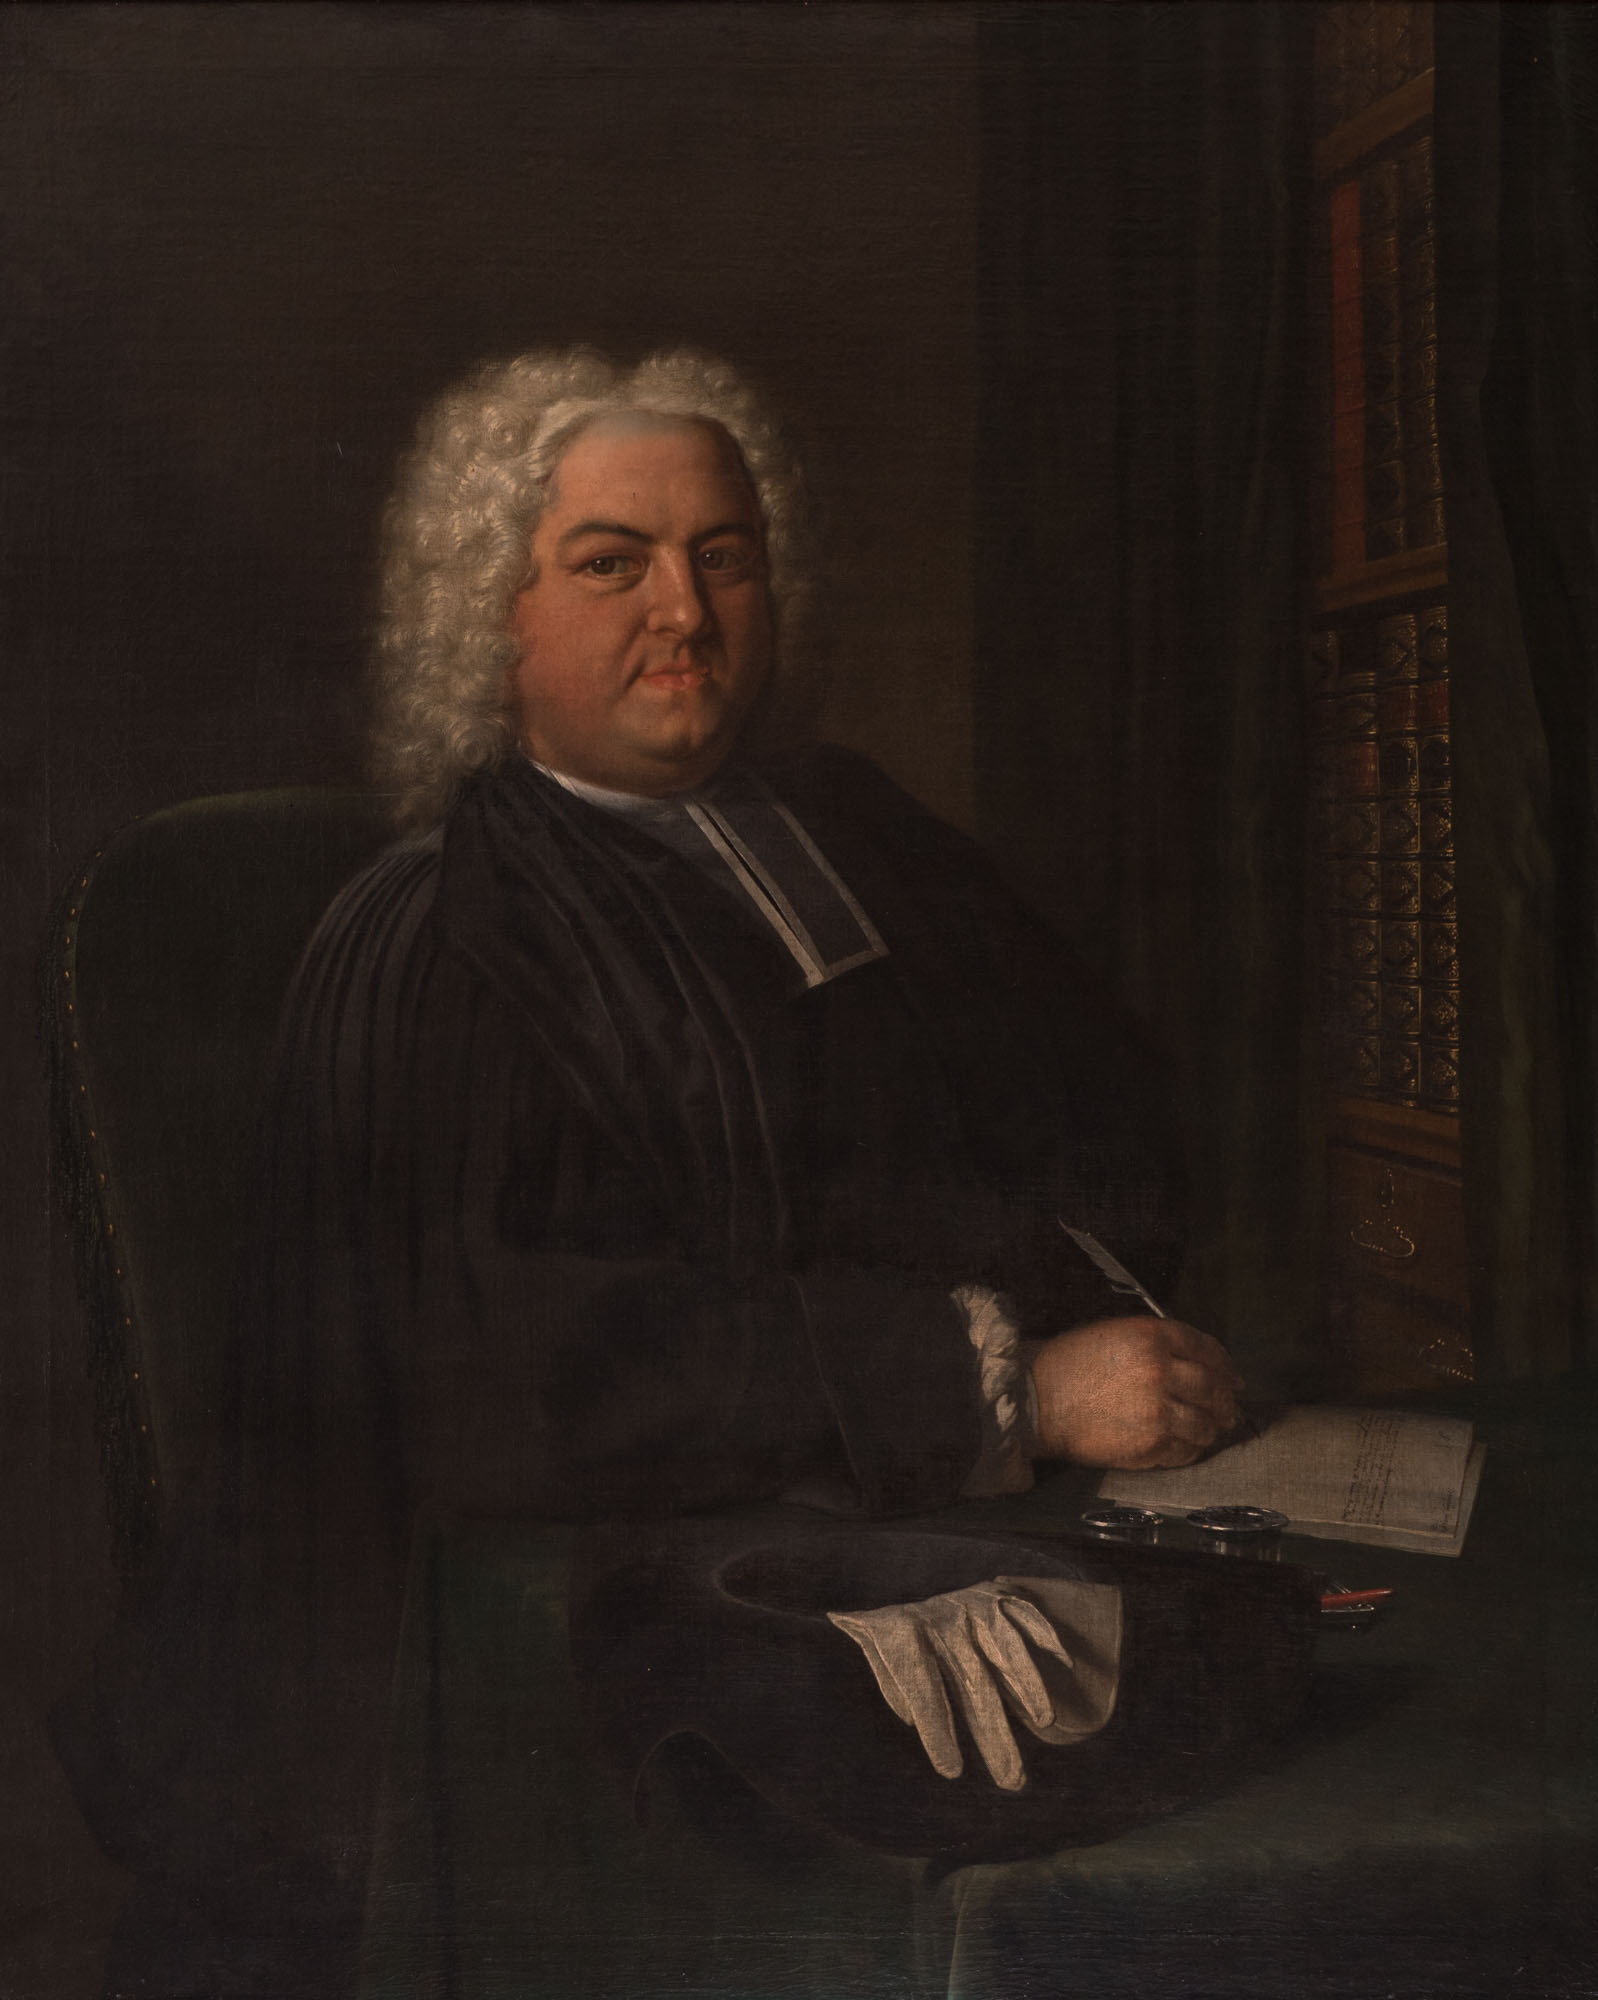 A Portrait of the Rev. William Chambers, by Frans van der Mijn (1719-1783).